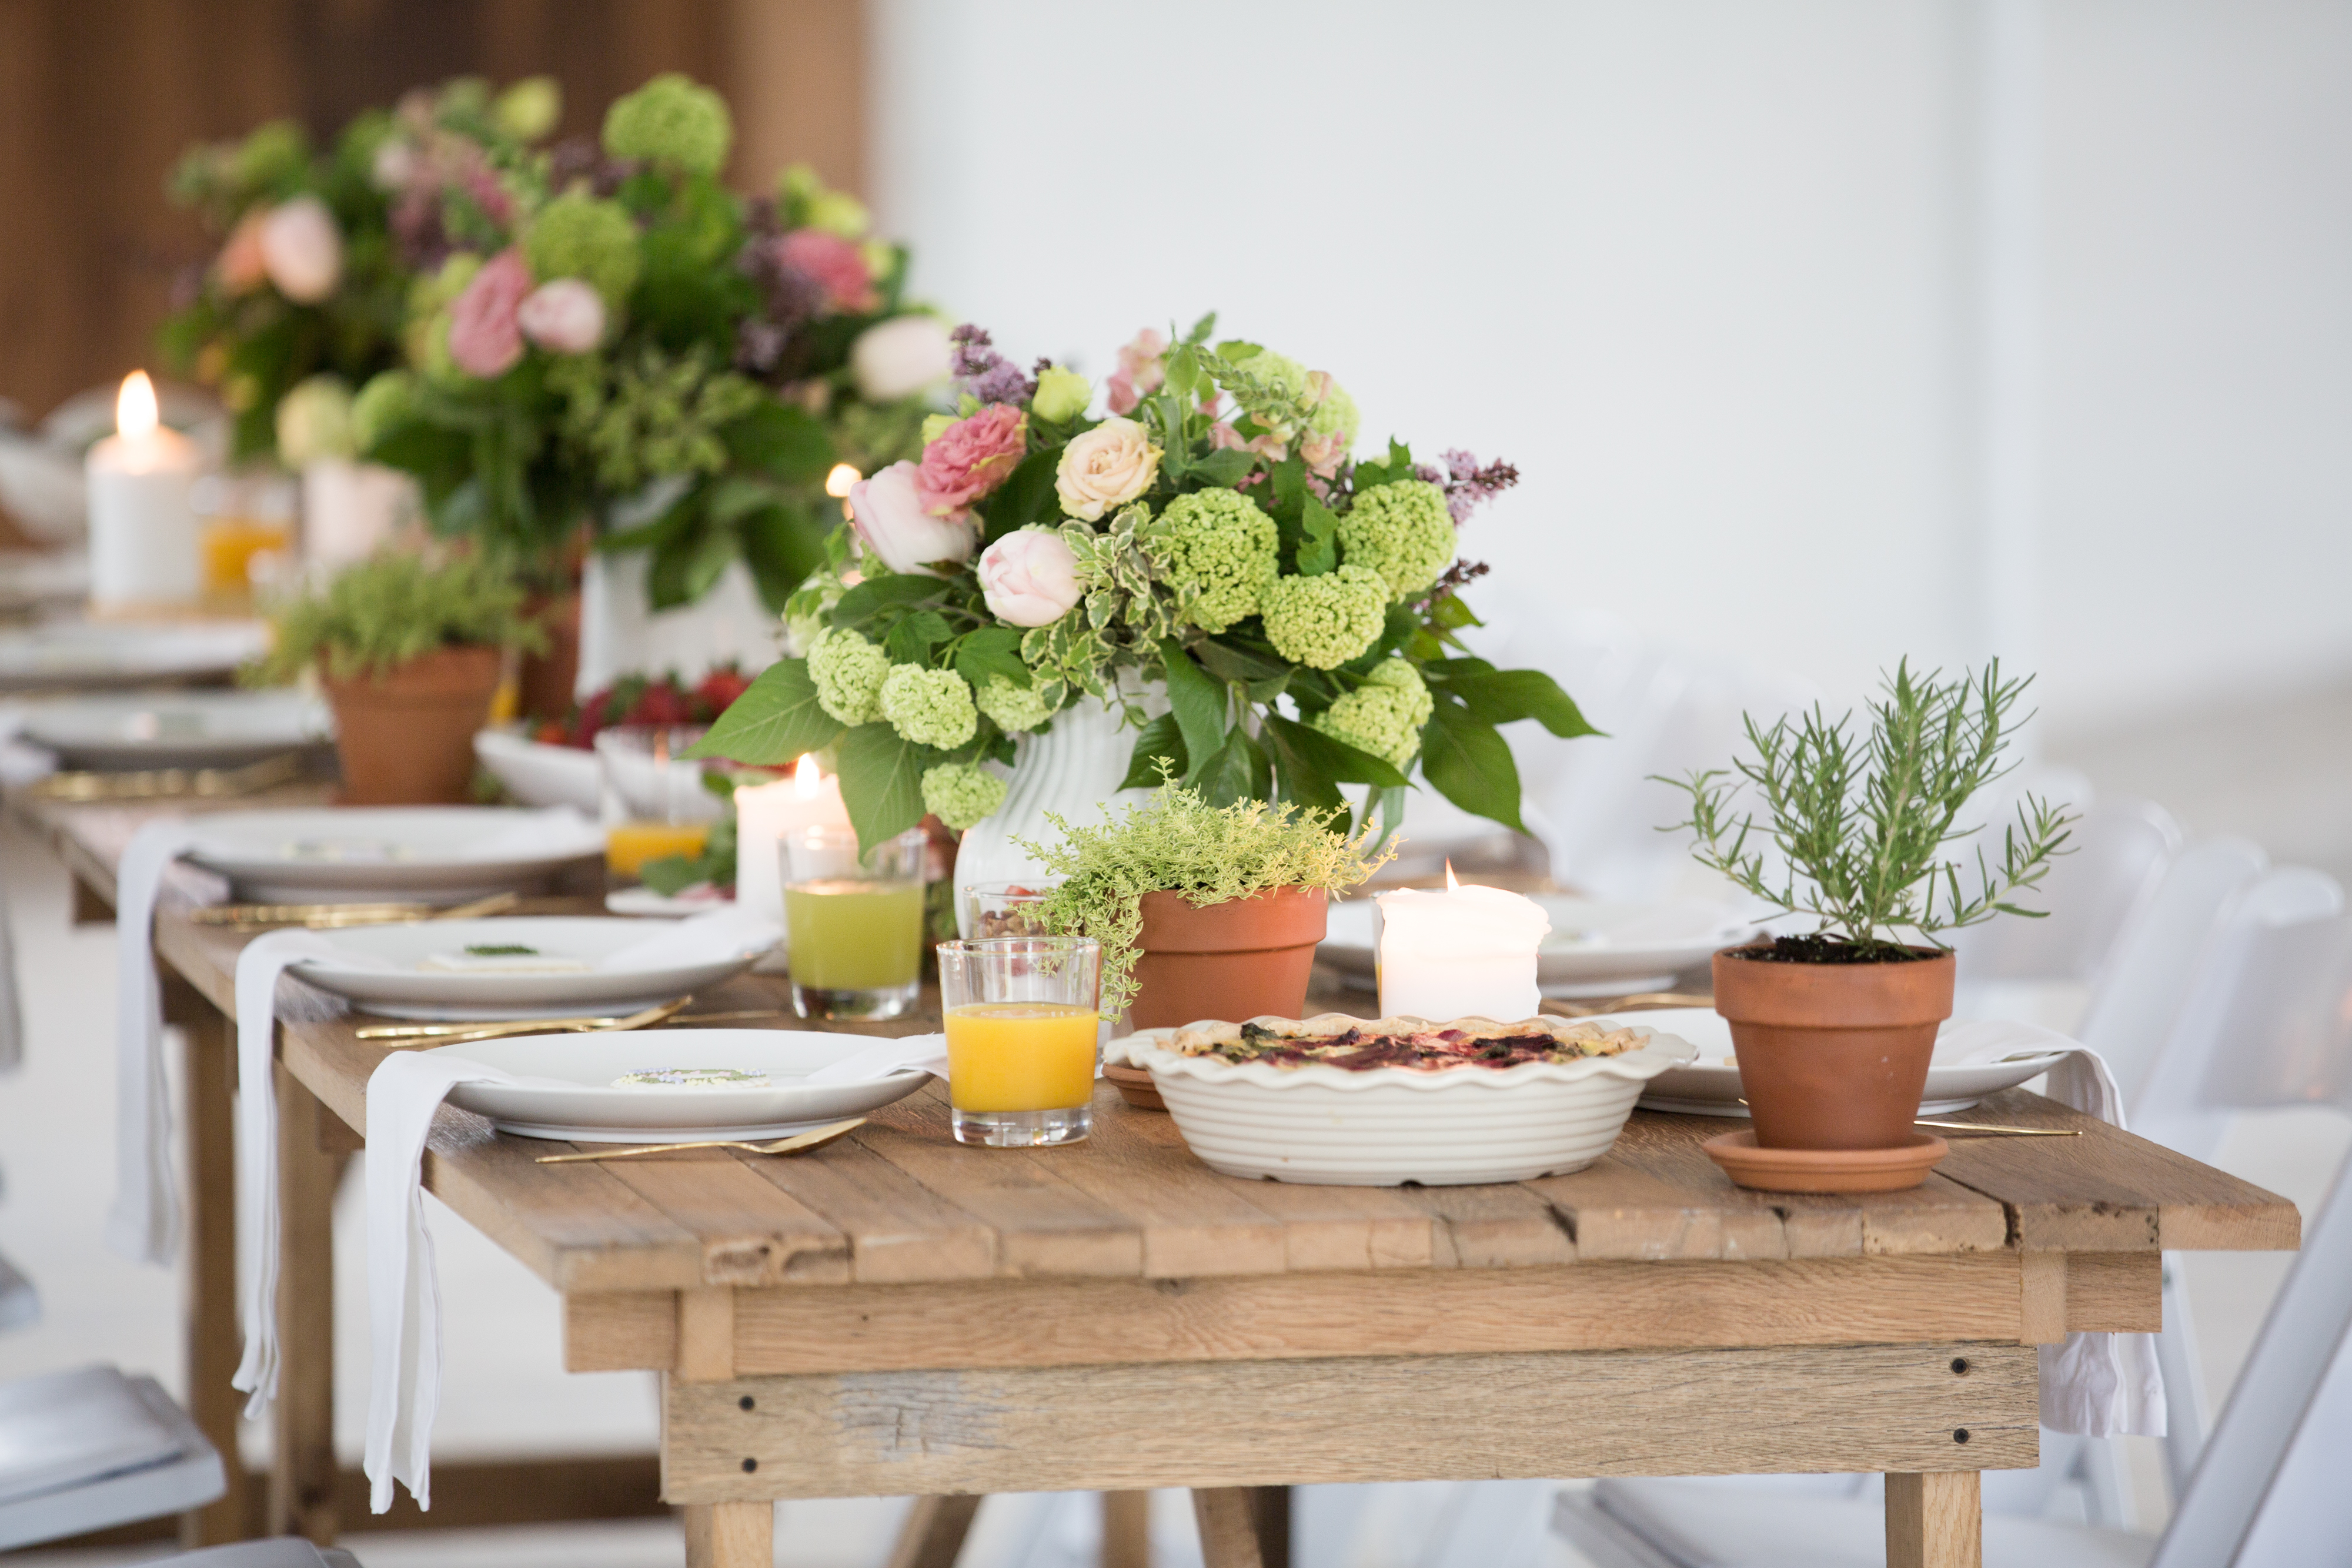 floral arrangements and place settings on picnic table